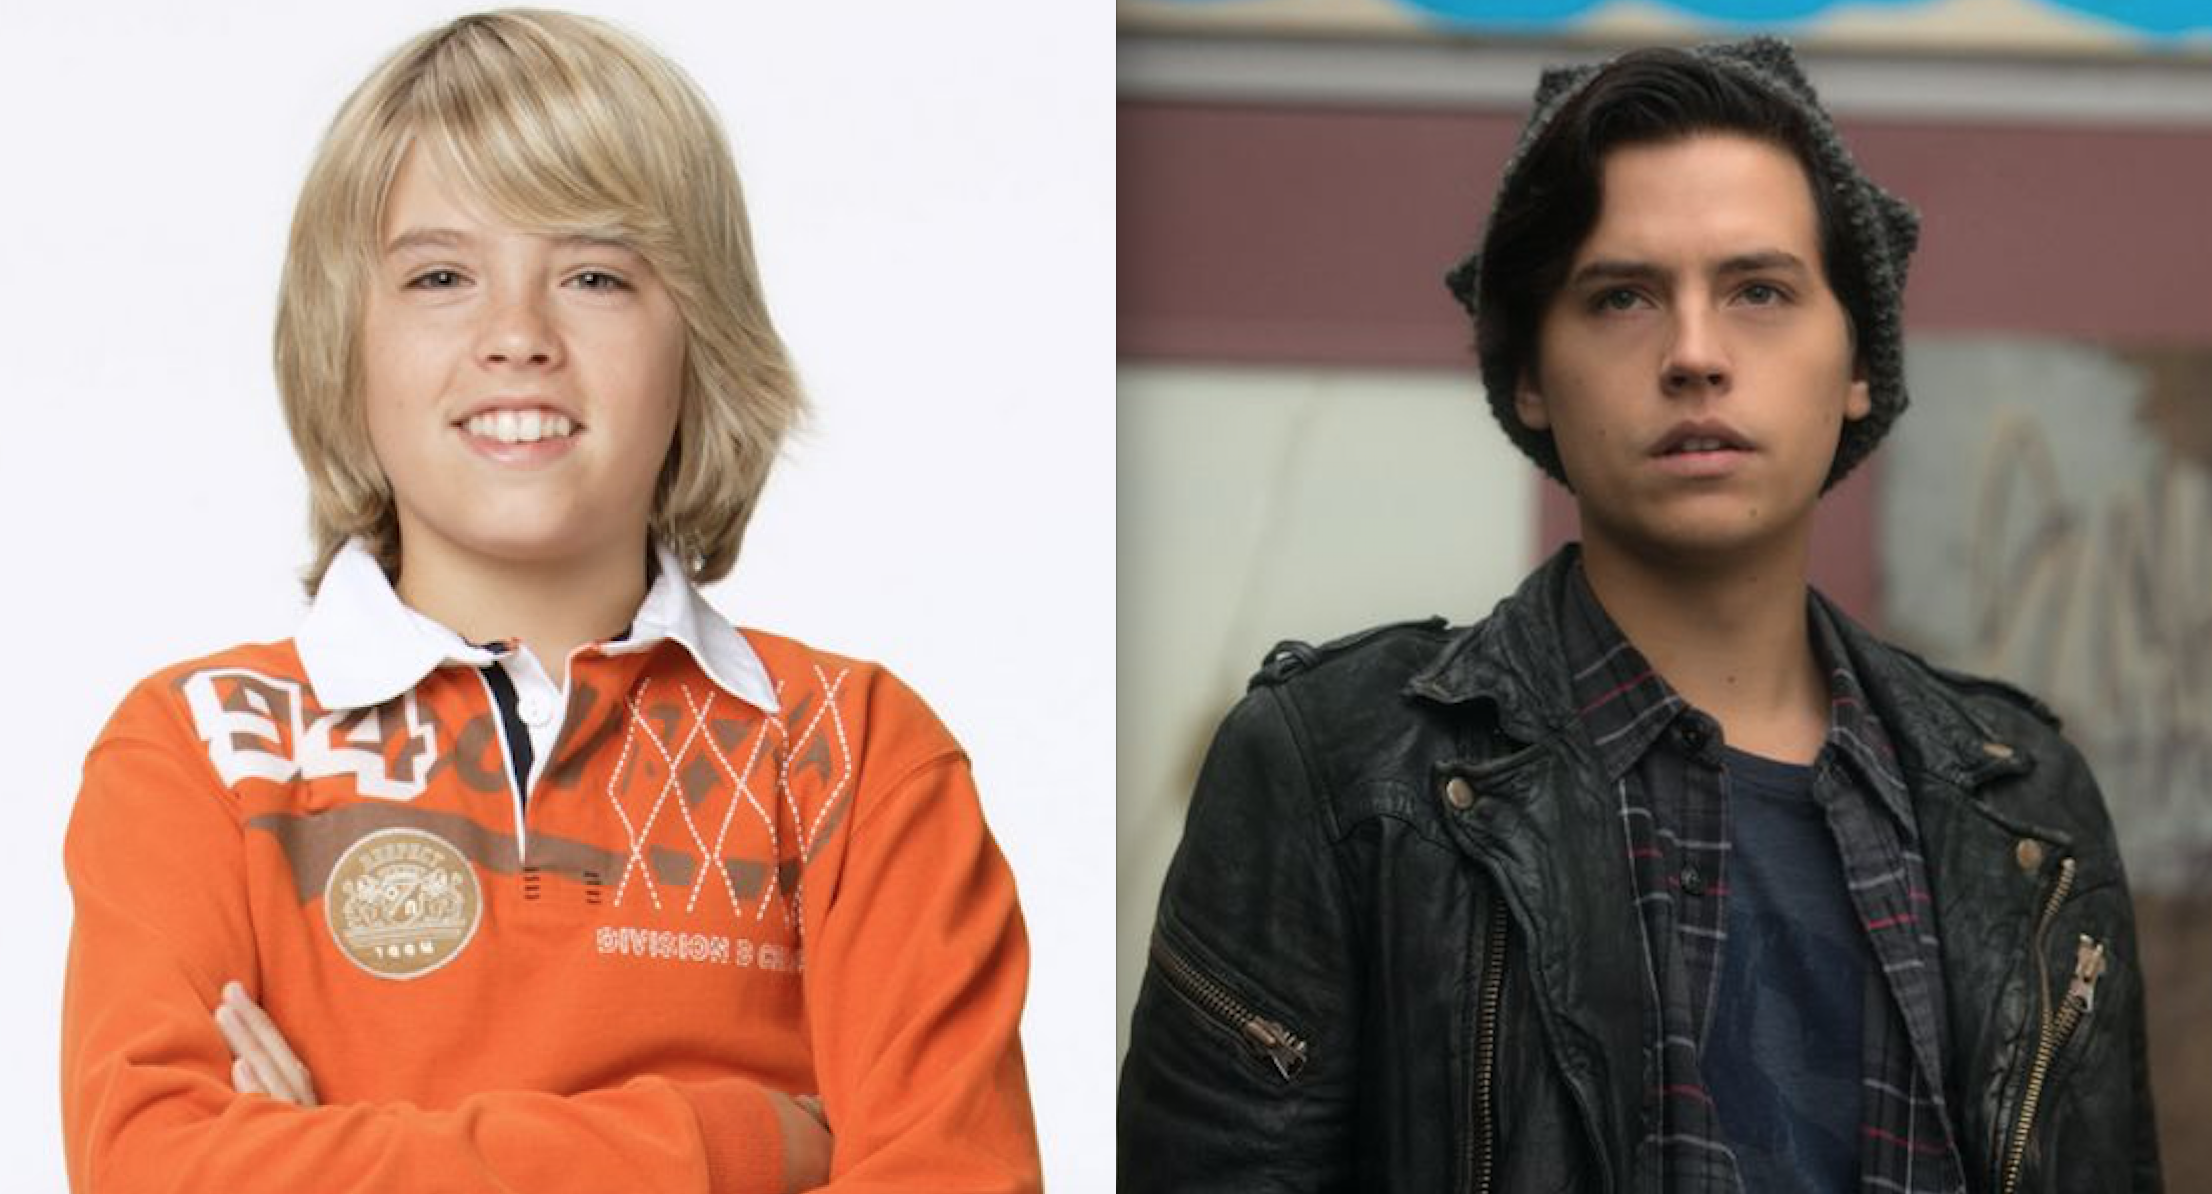 Cole Sprouse Facts , 20 Things to Know About Jughead From